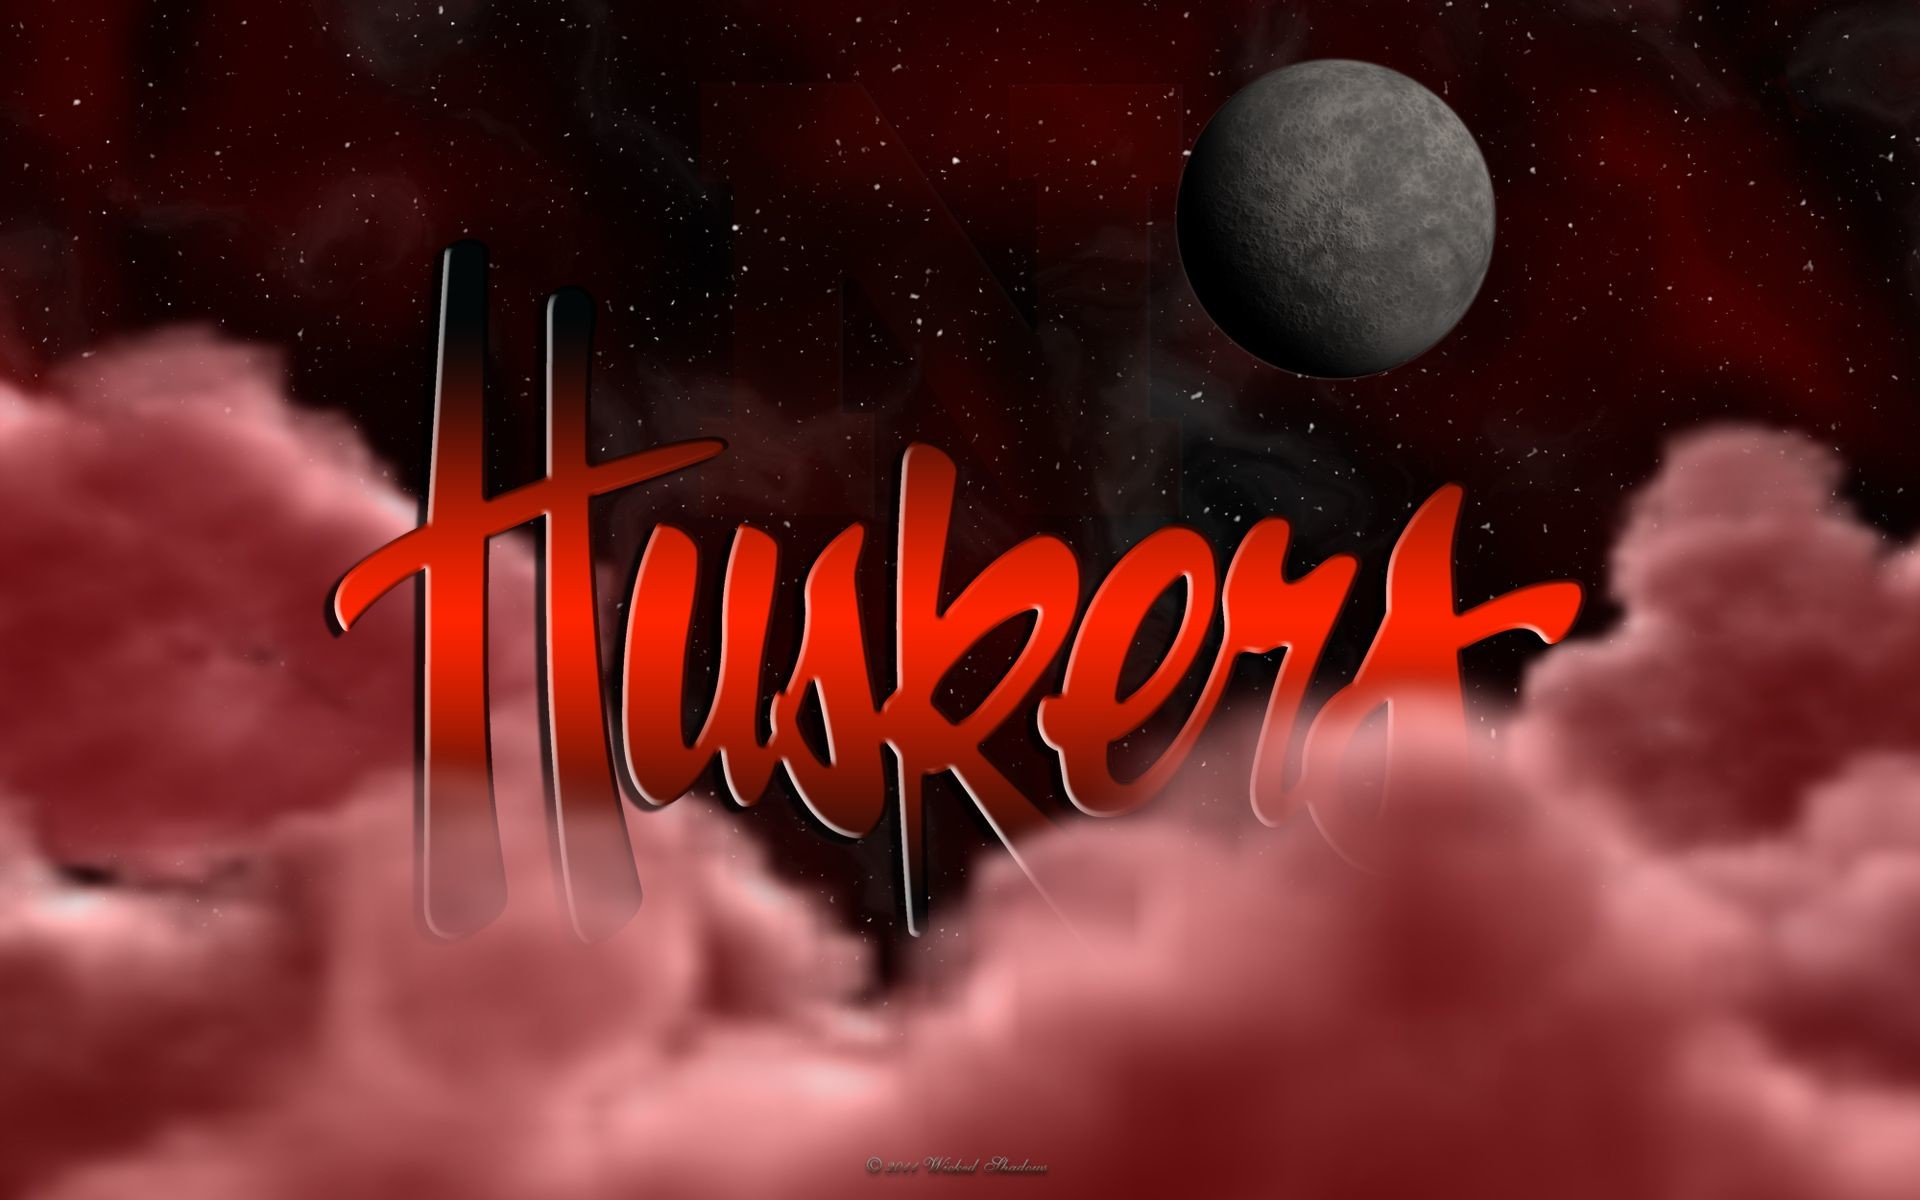 Wallpapers By Wicked Shadows: Huskers Above The Clouds Wallpaper